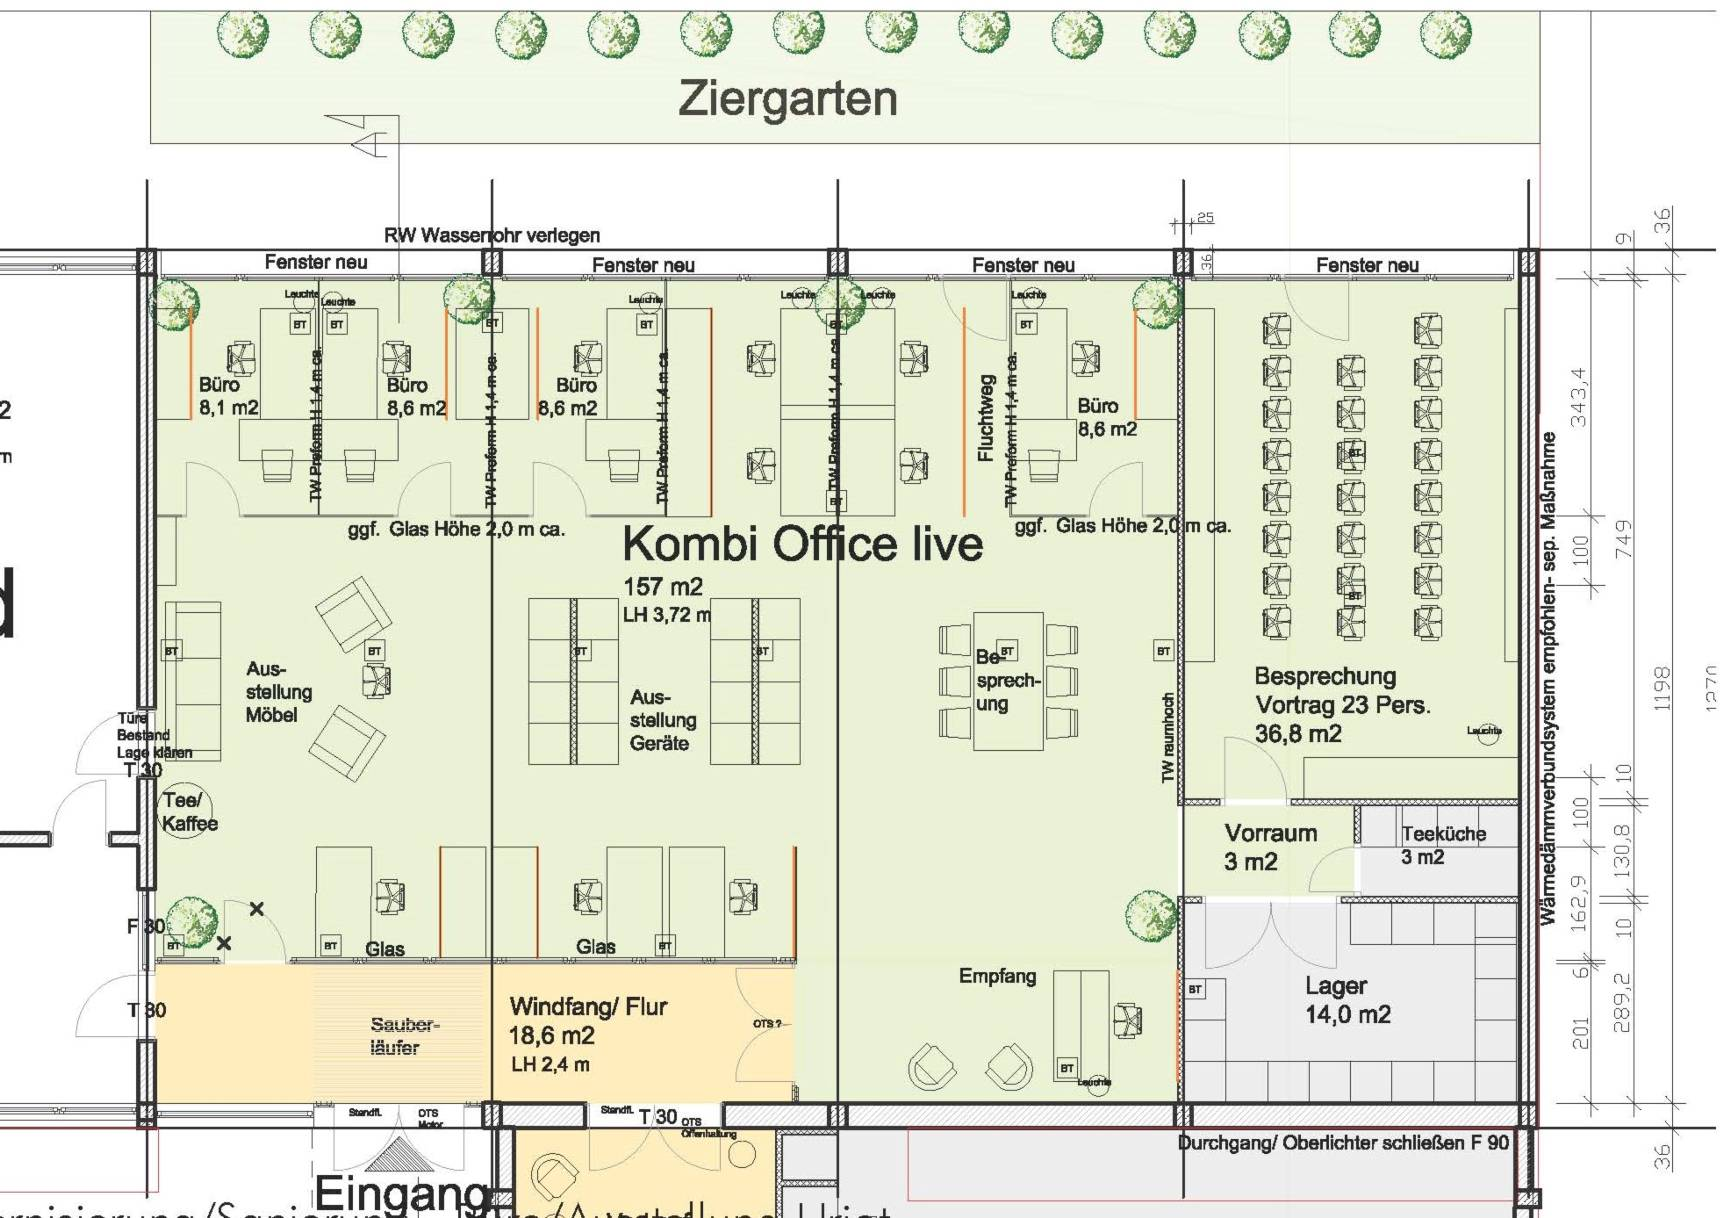 Kombi Office